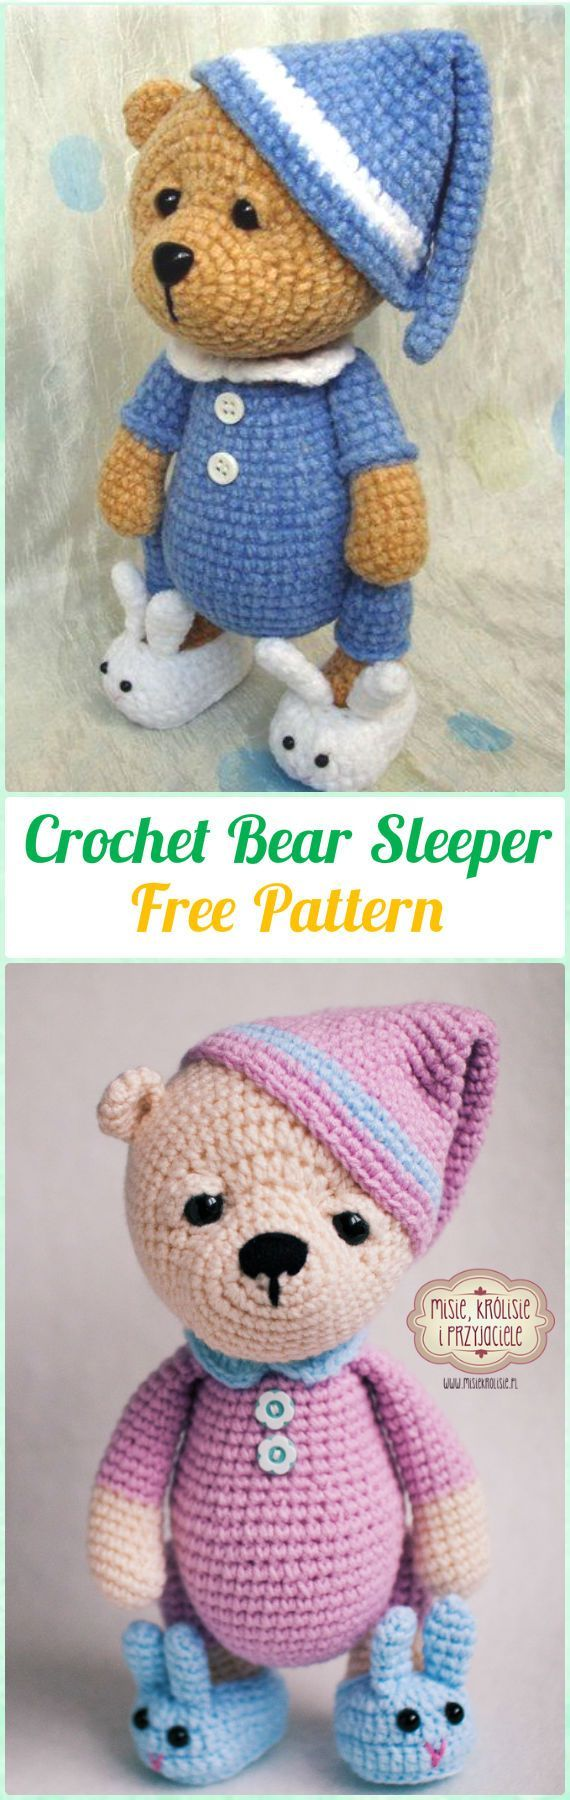 864 best crochet toys images on pinterest crochet stitches amigurumi crochet bear sleeper free pattern amigurumi crochet teddy bear toys free patterns bankloansurffo Choice Image